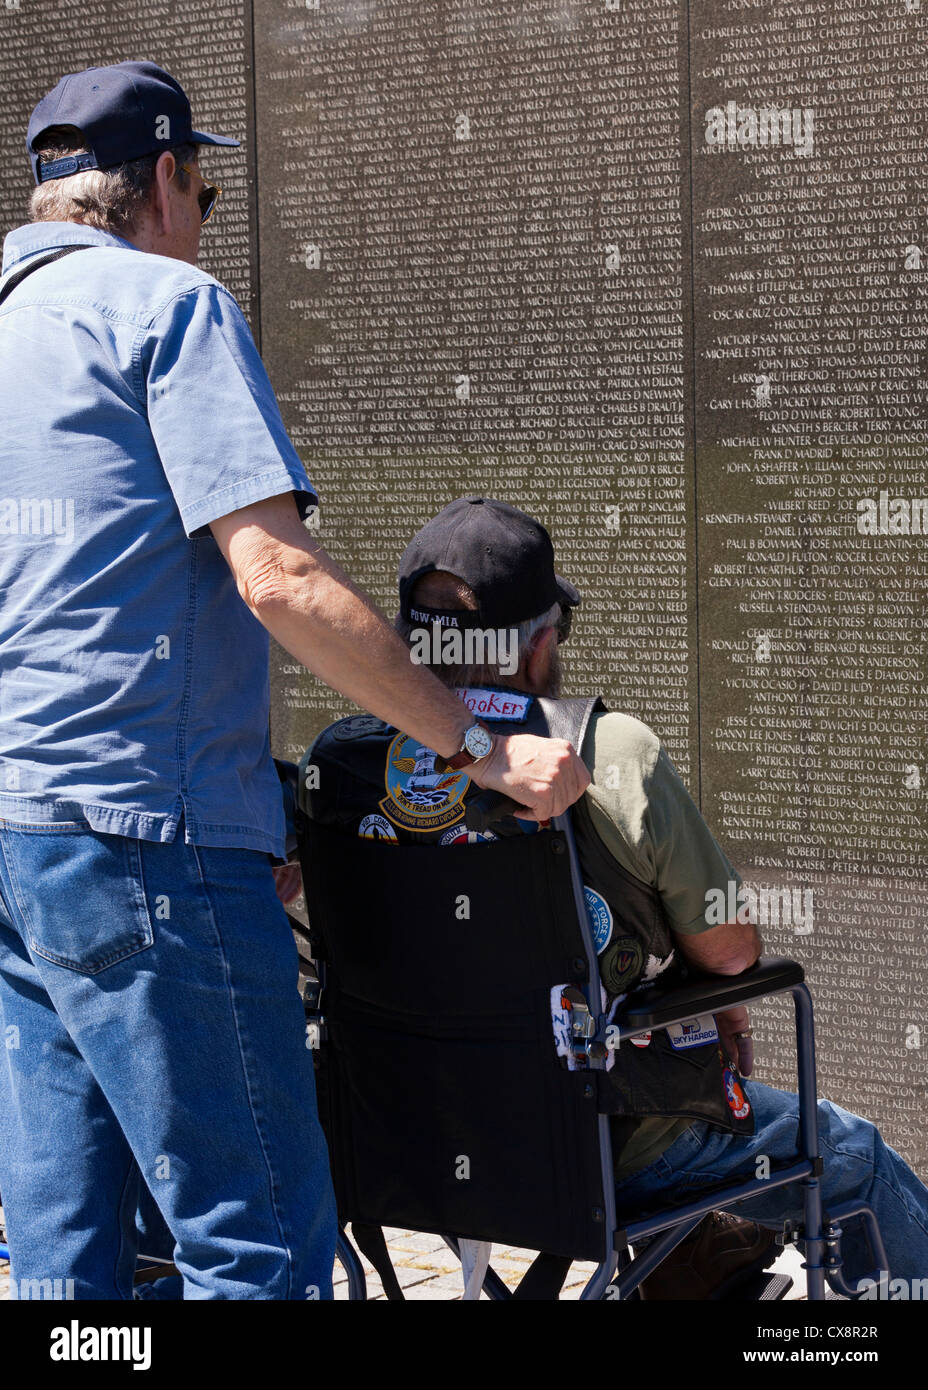 Disabled vet visiting the Vietnam War Memorial - Washington, DC - Stock Image